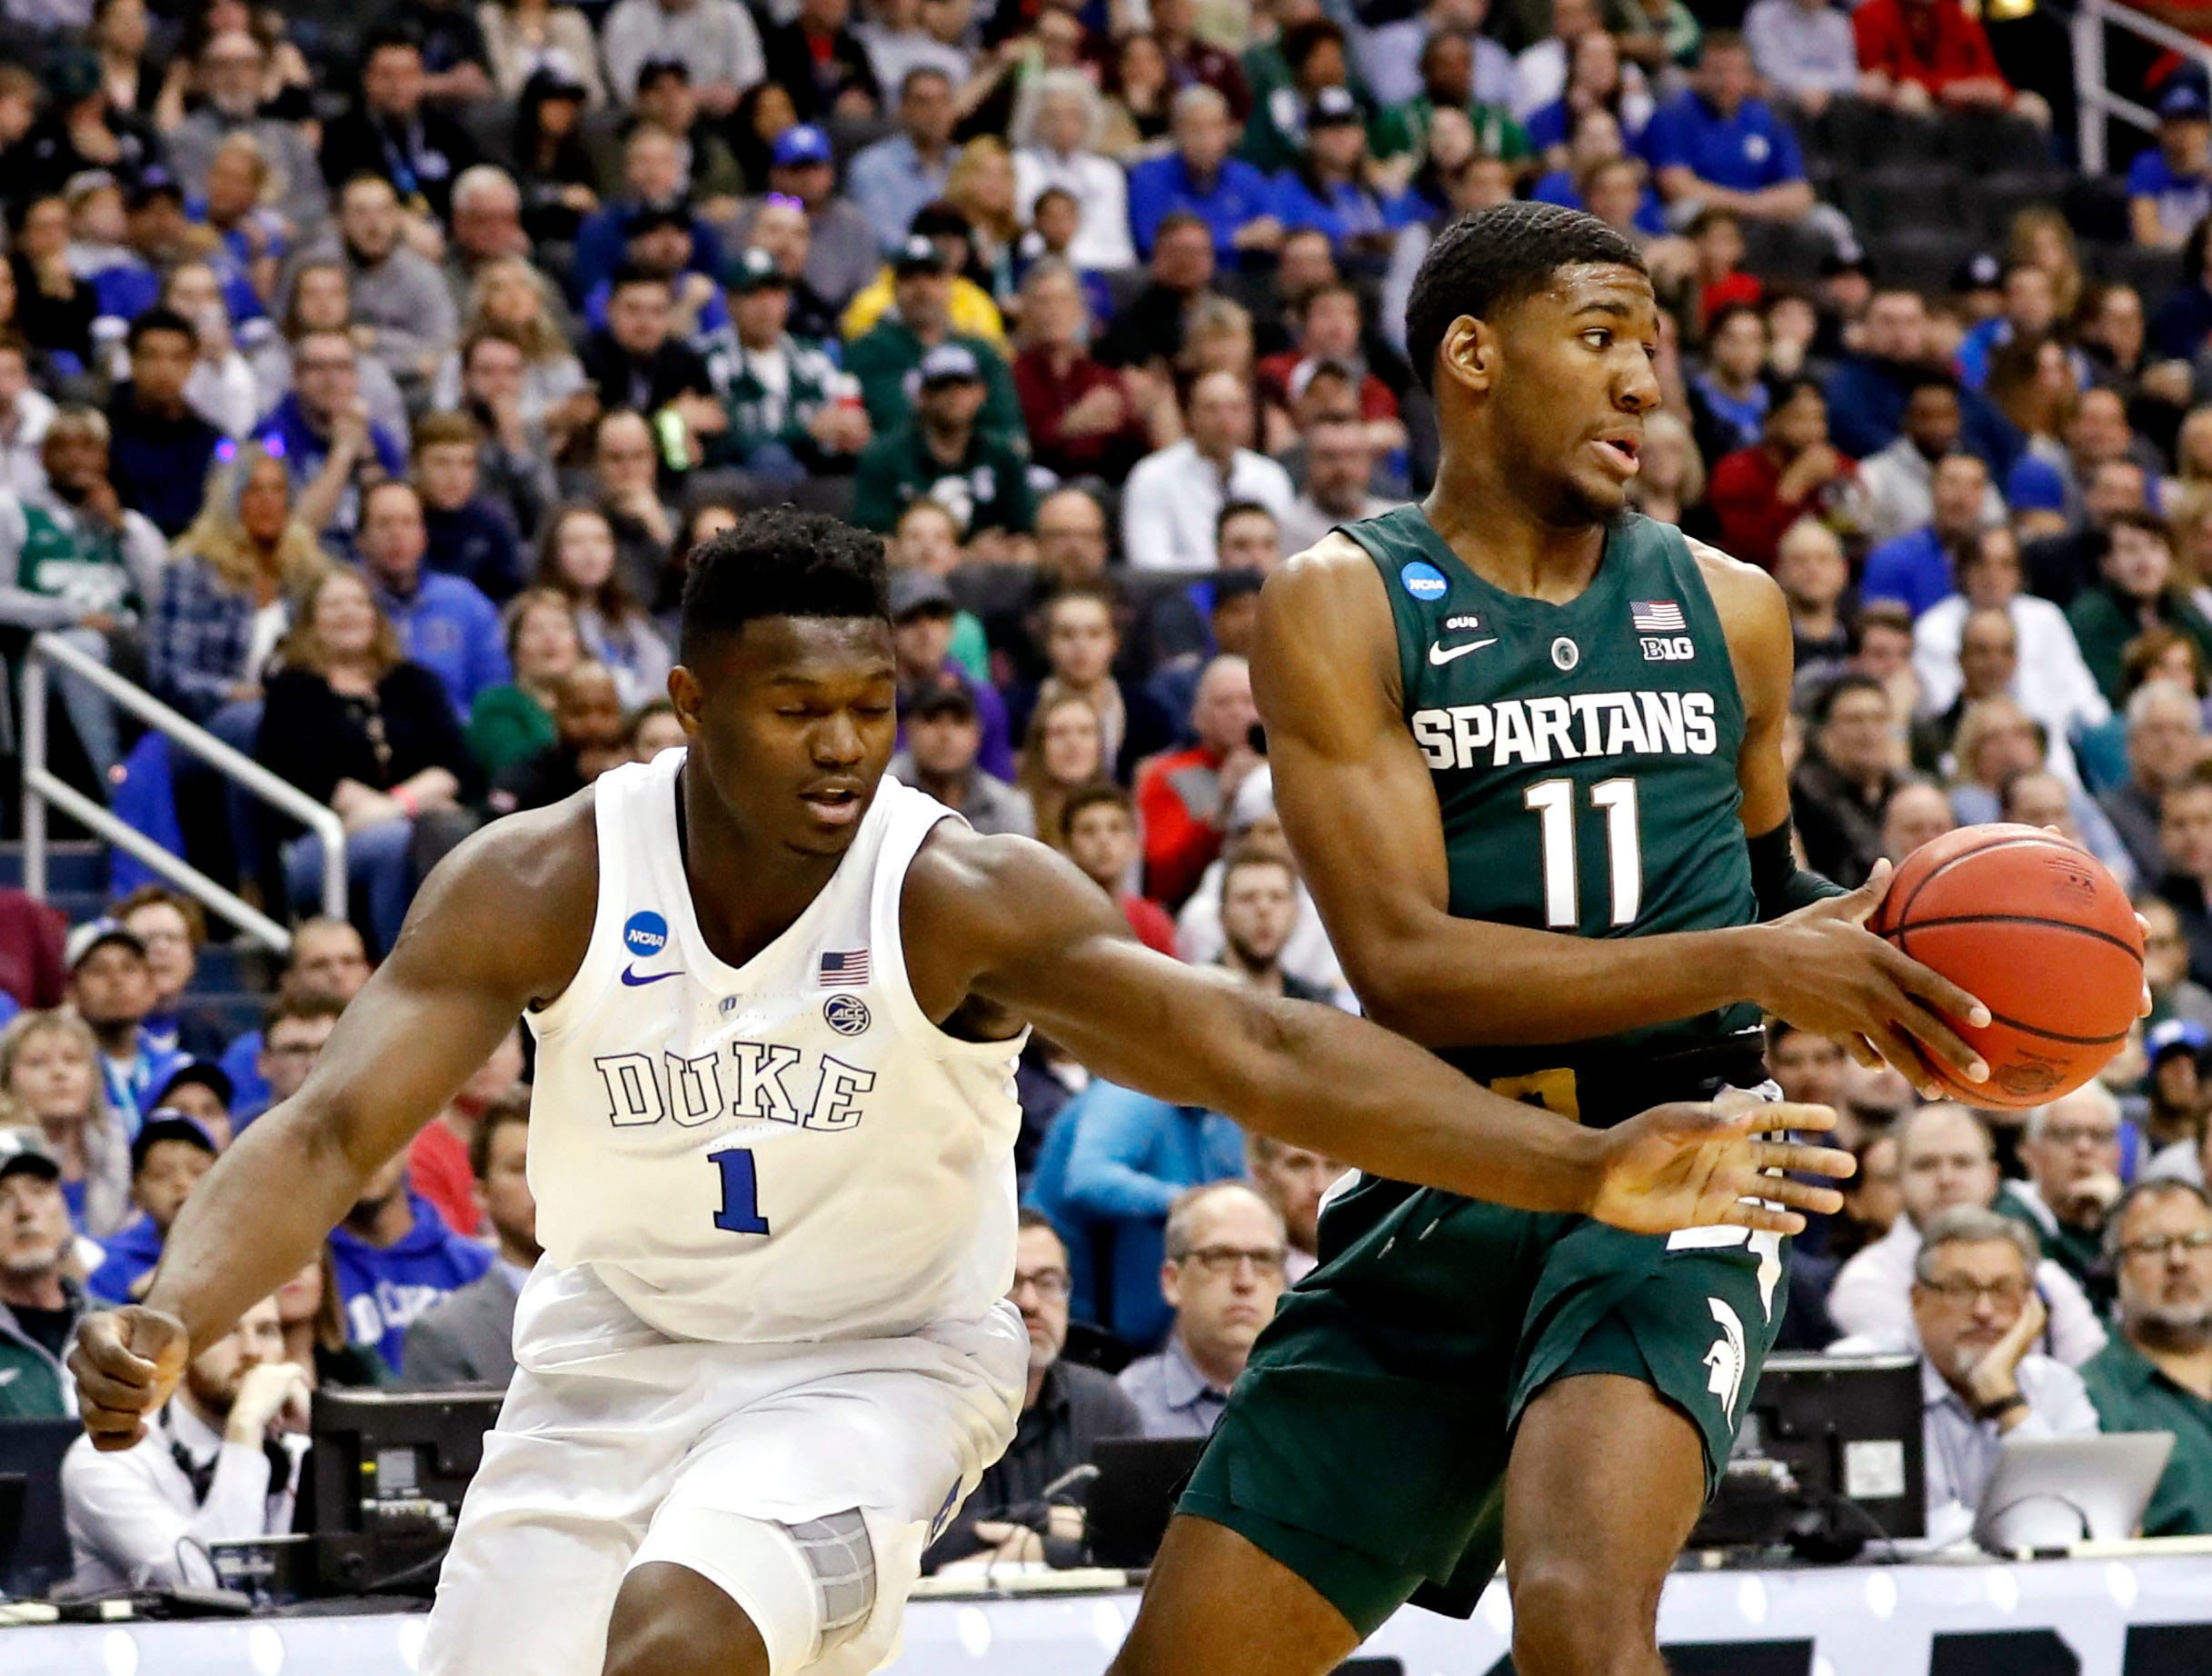 Michigan State Spartans forward Aaron Henry (11) handles the ball against Duke Blue Devils forward Zion Williamson (1) during the first half in the championship game of the east regional of the 2019 NCAA Tournament at Capital One Arena.